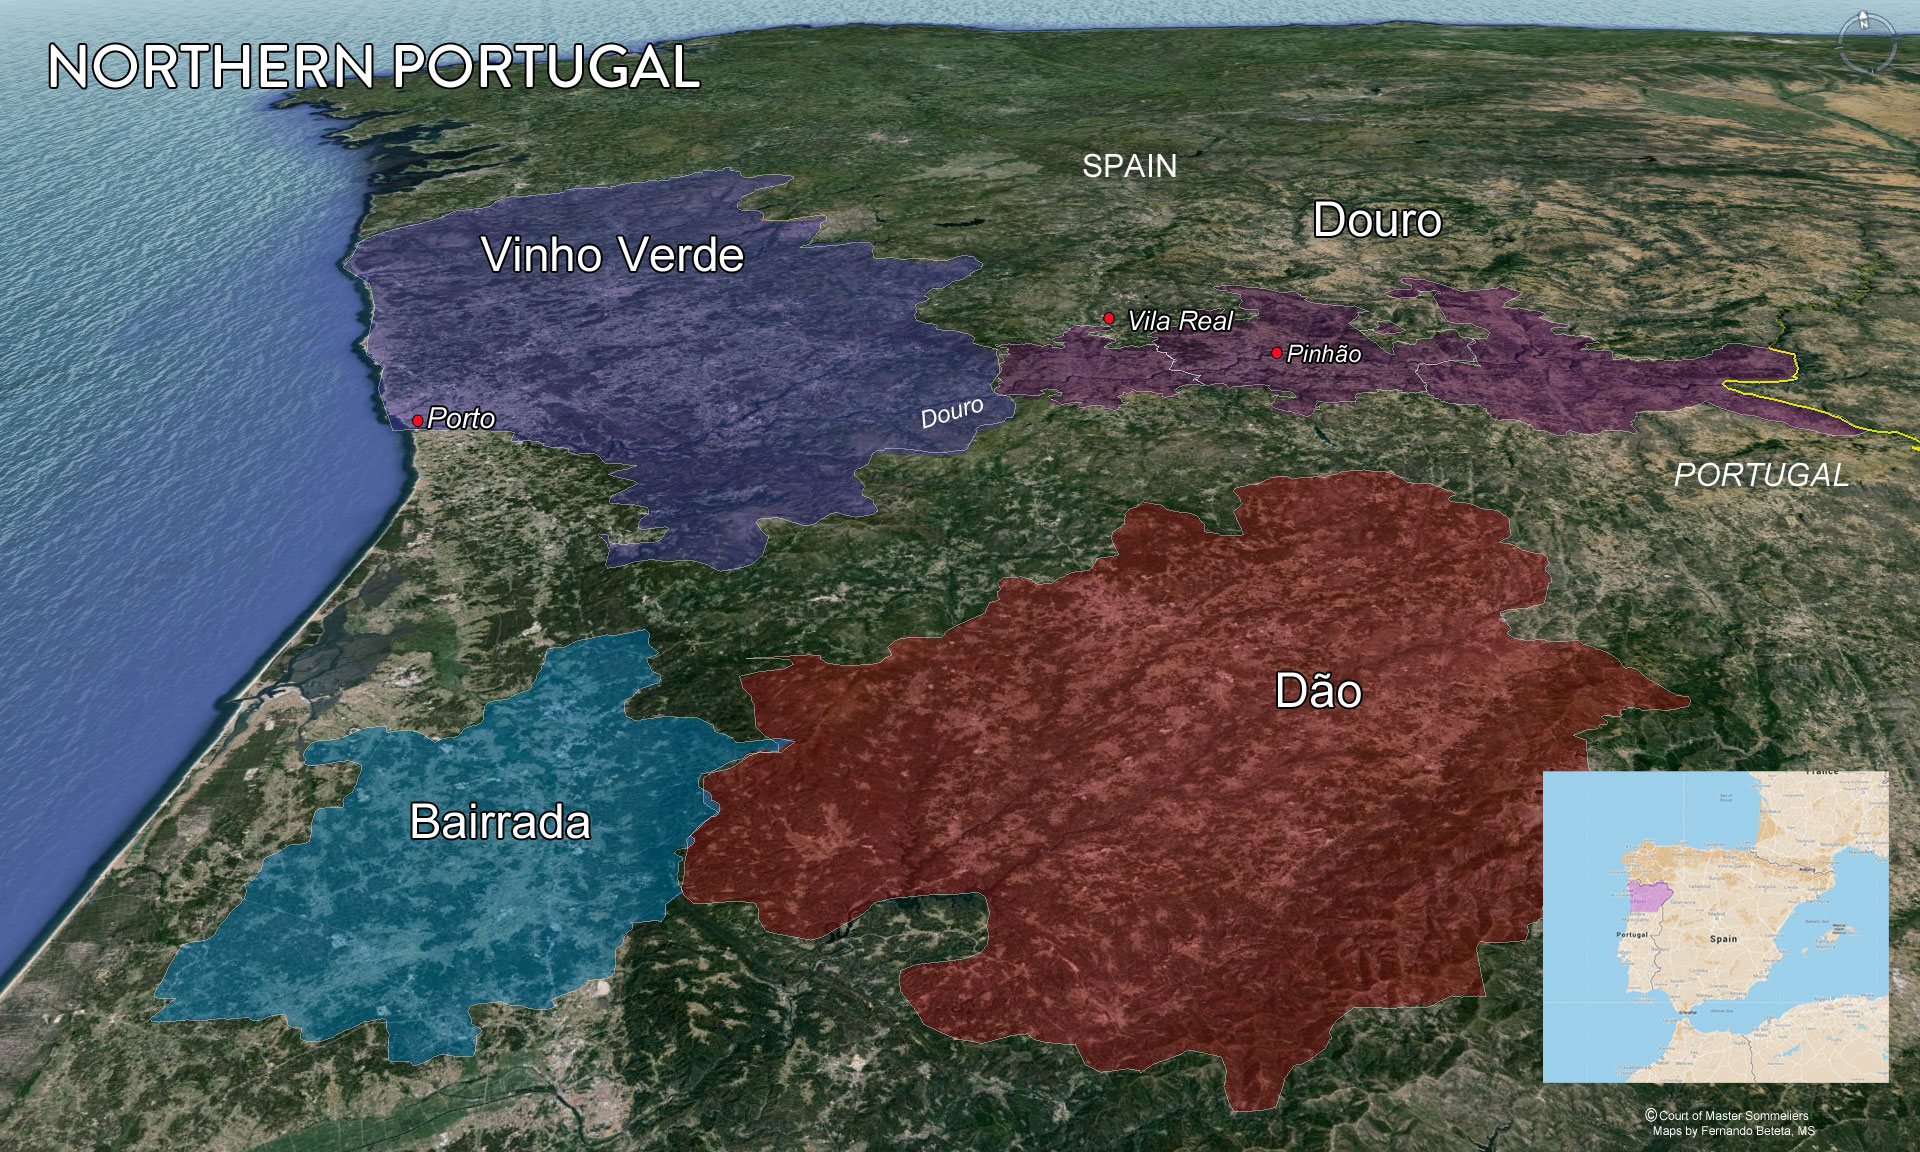 Northern Portugal wine map